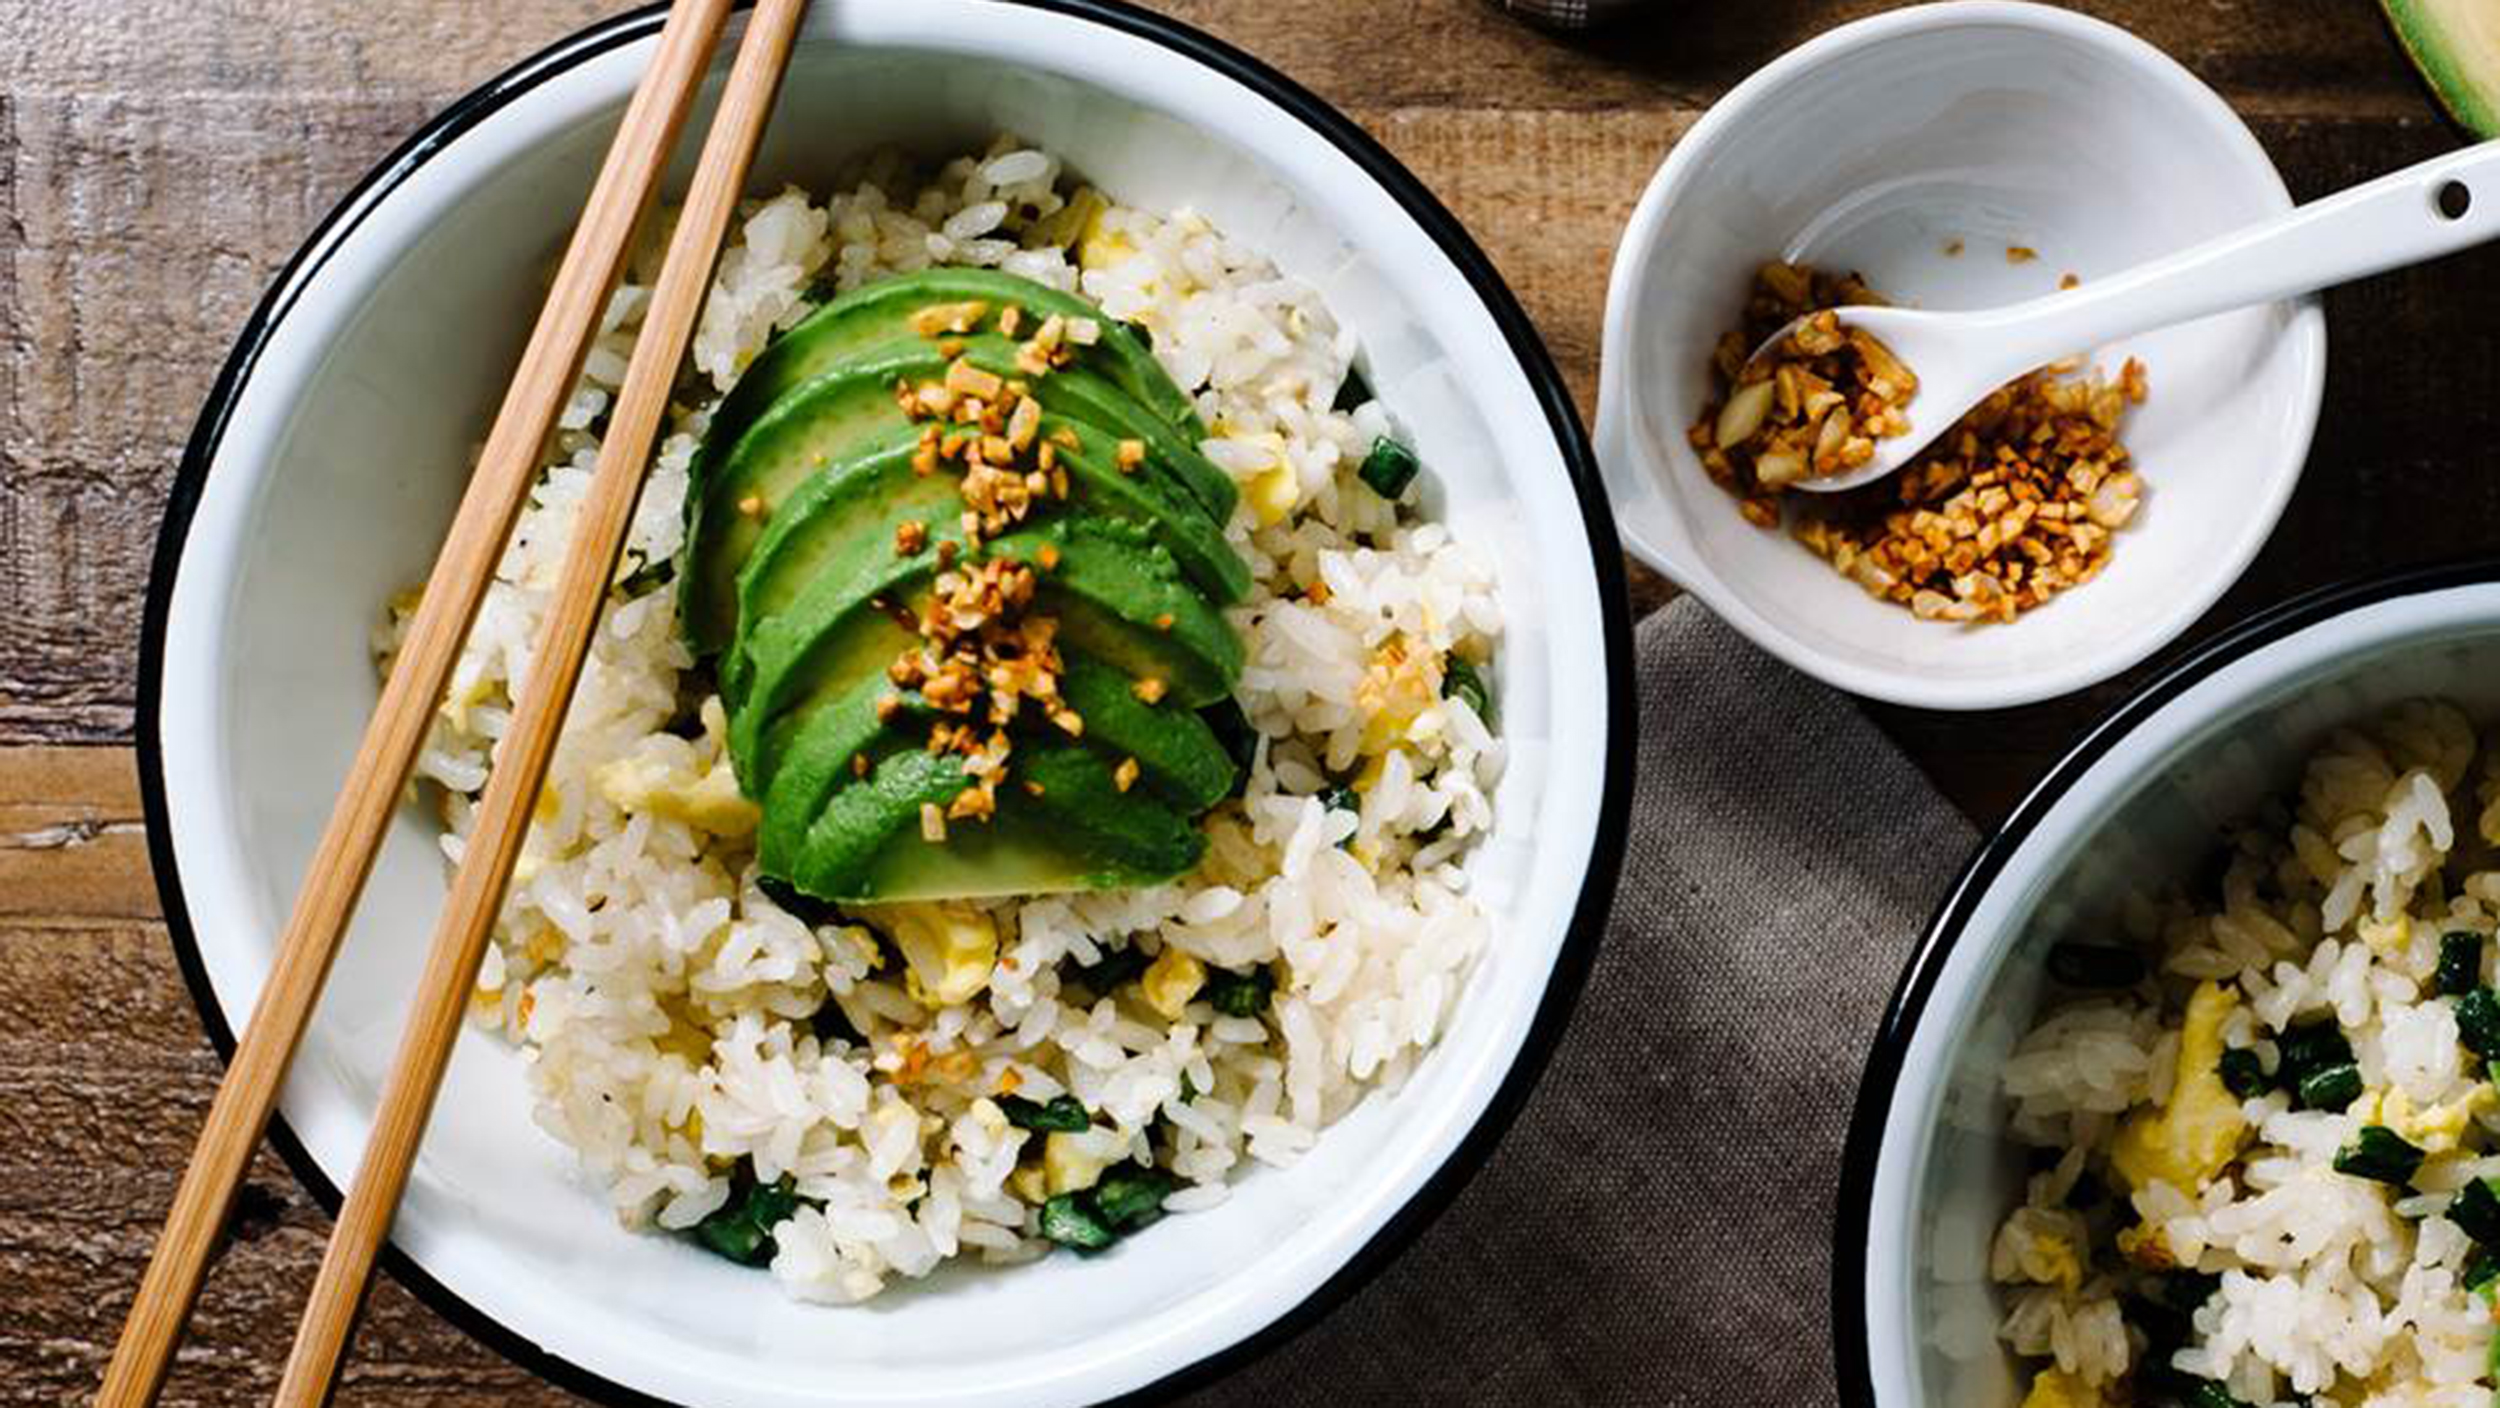 10 exciting new stir-fry recipes to try this summer - TODAY.com